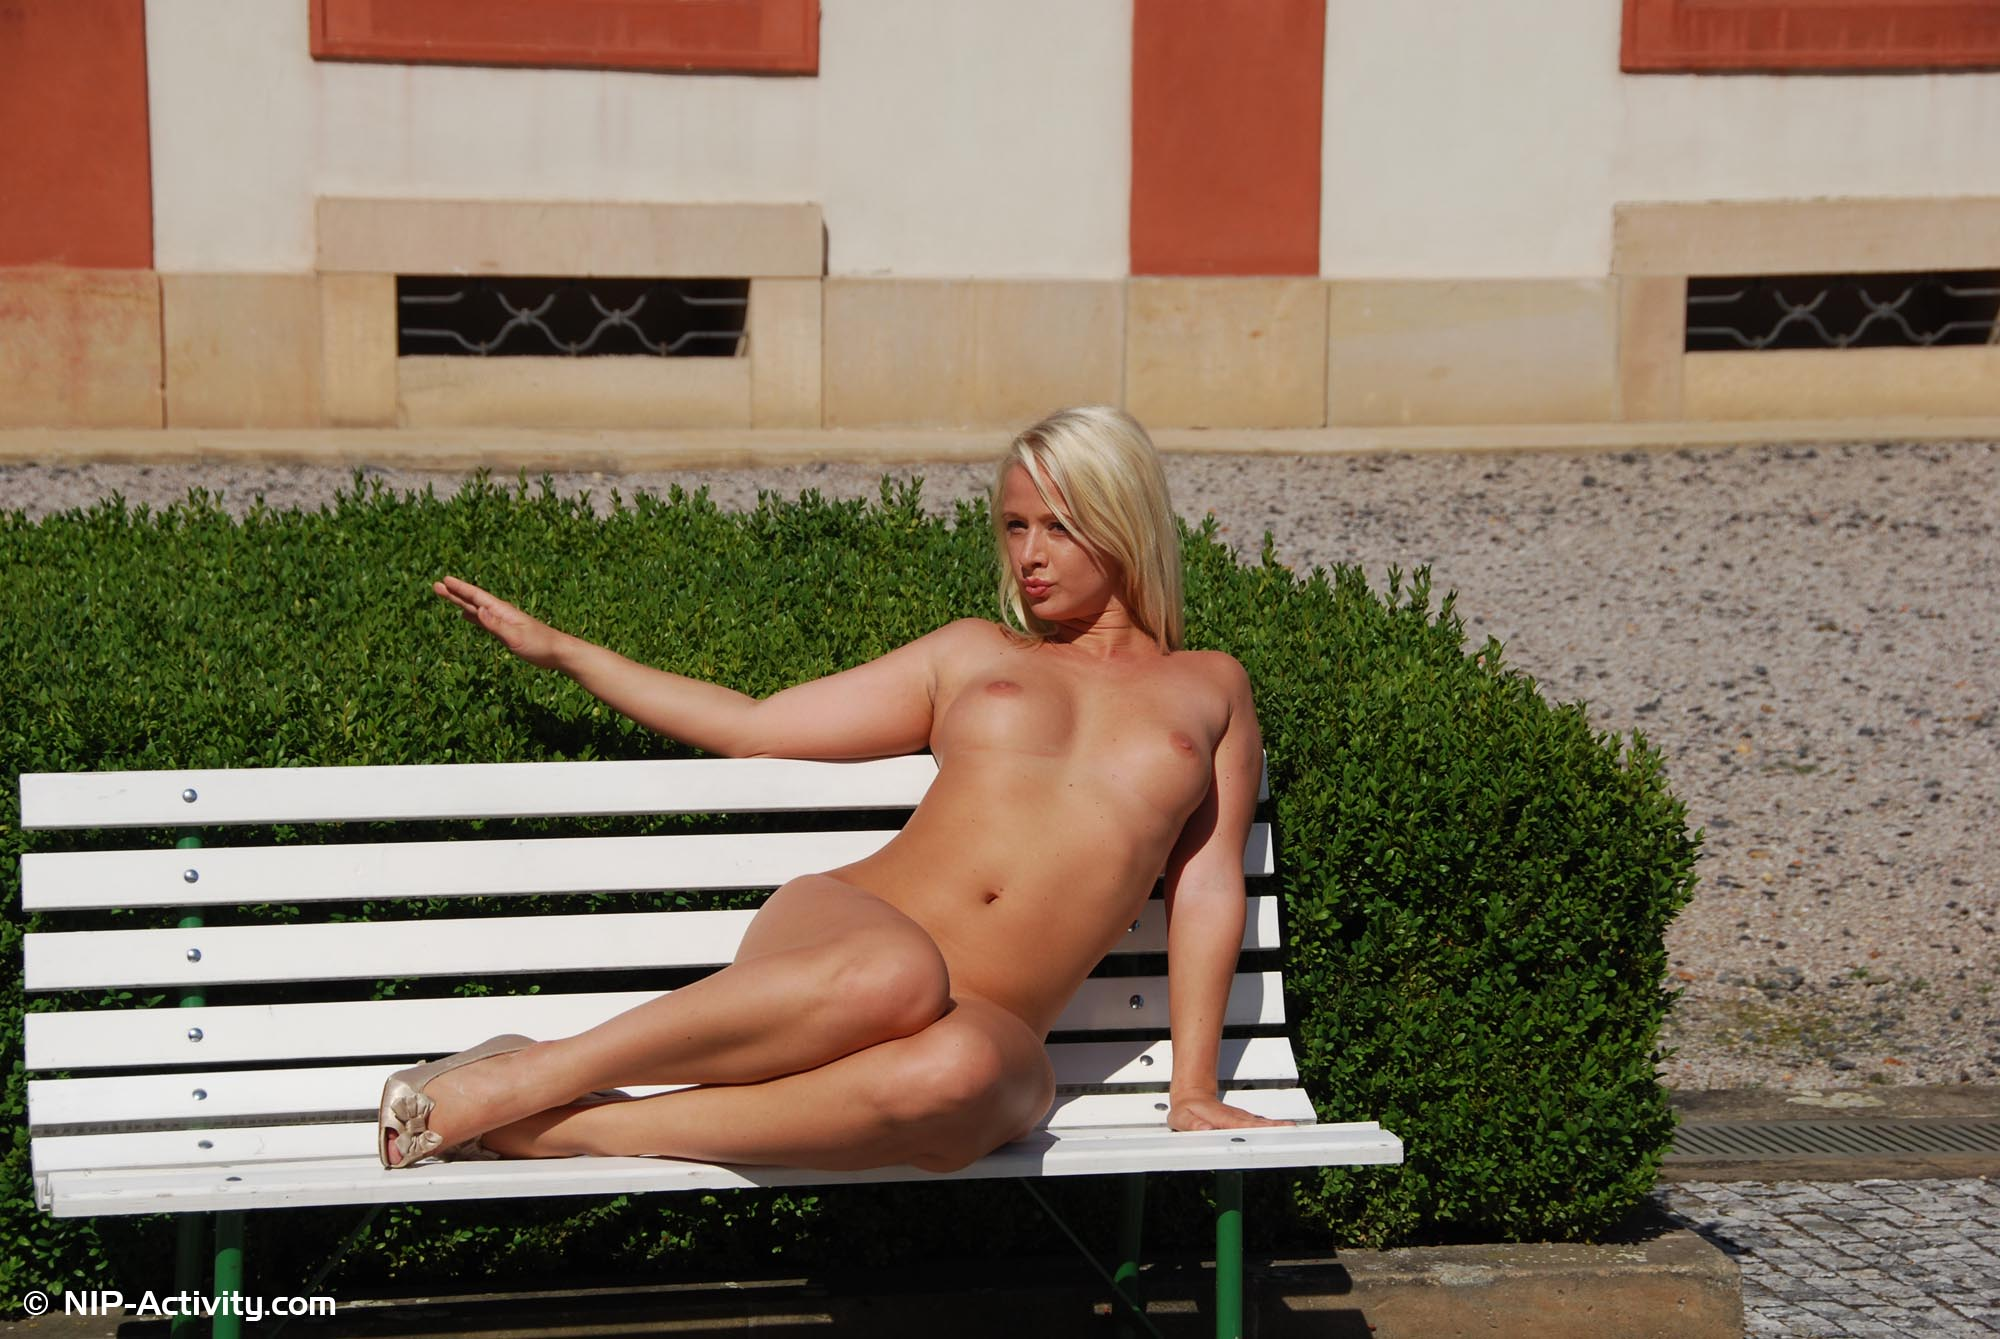 Can Nude in public nip think